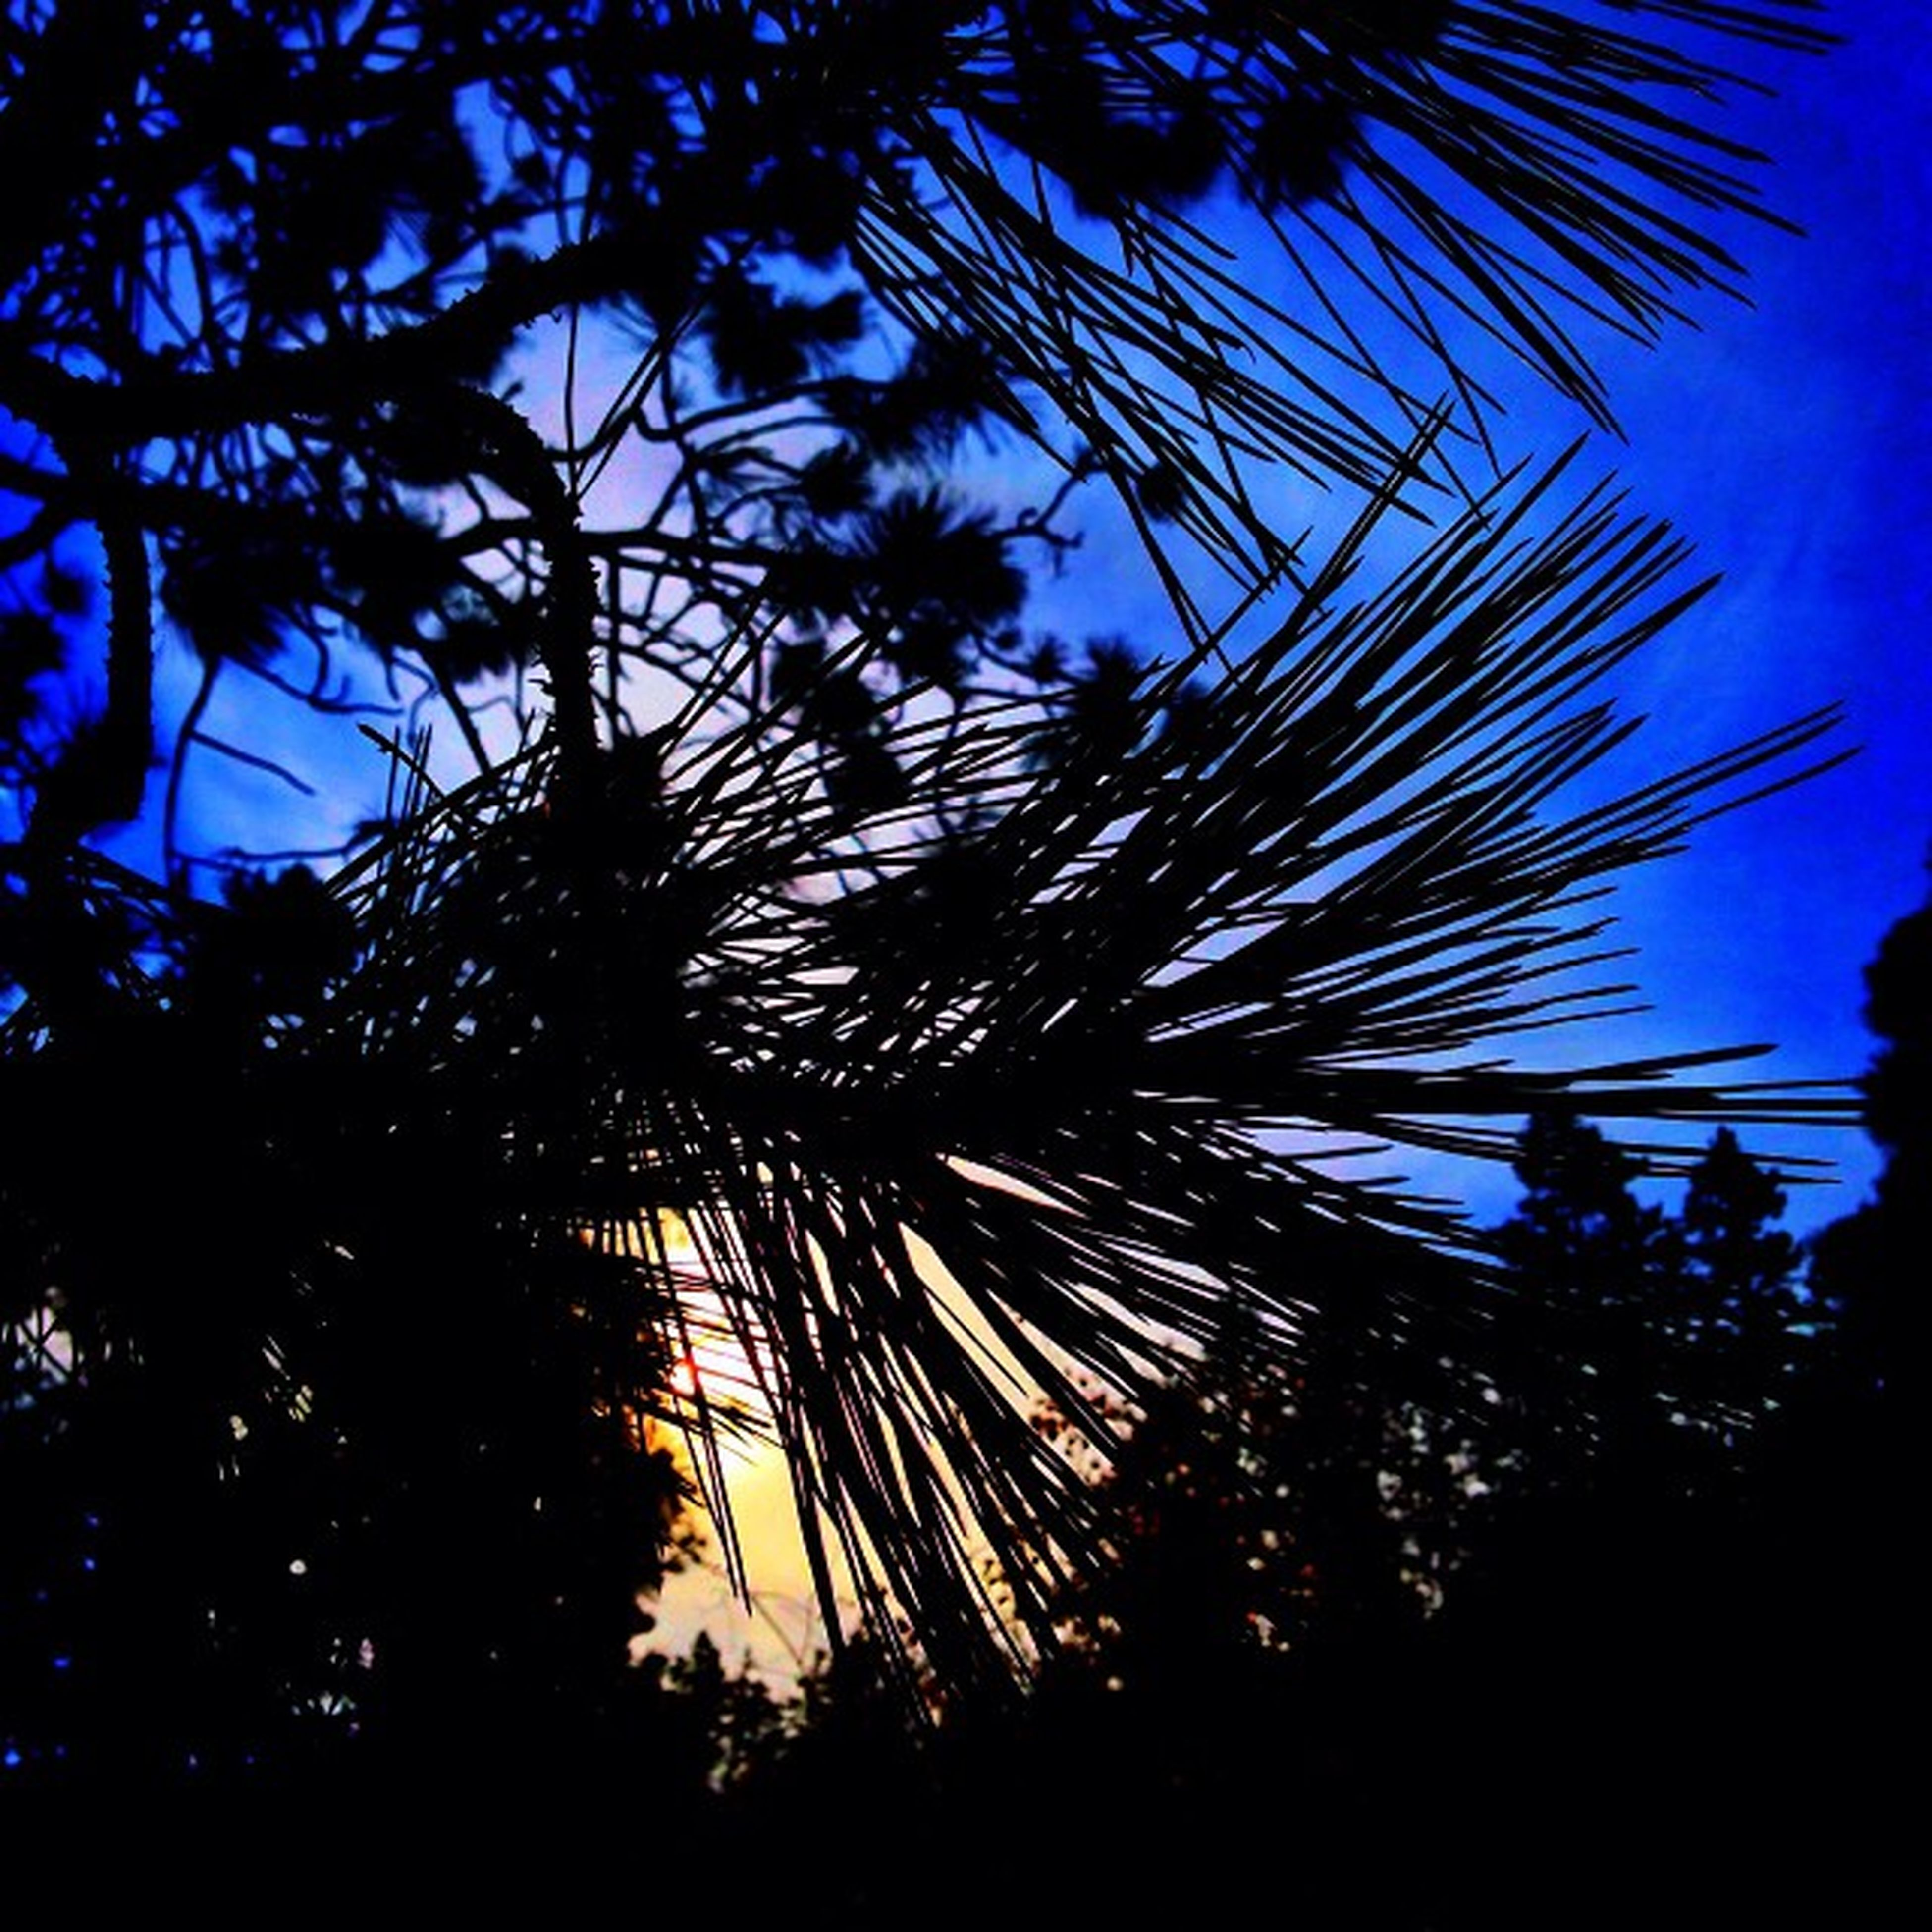 tree, low angle view, silhouette, palm tree, growth, tranquility, nature, beauty in nature, sky, branch, clear sky, blue, scenics, sunset, tranquil scene, outdoors, tree trunk, no people, sunlight, idyllic